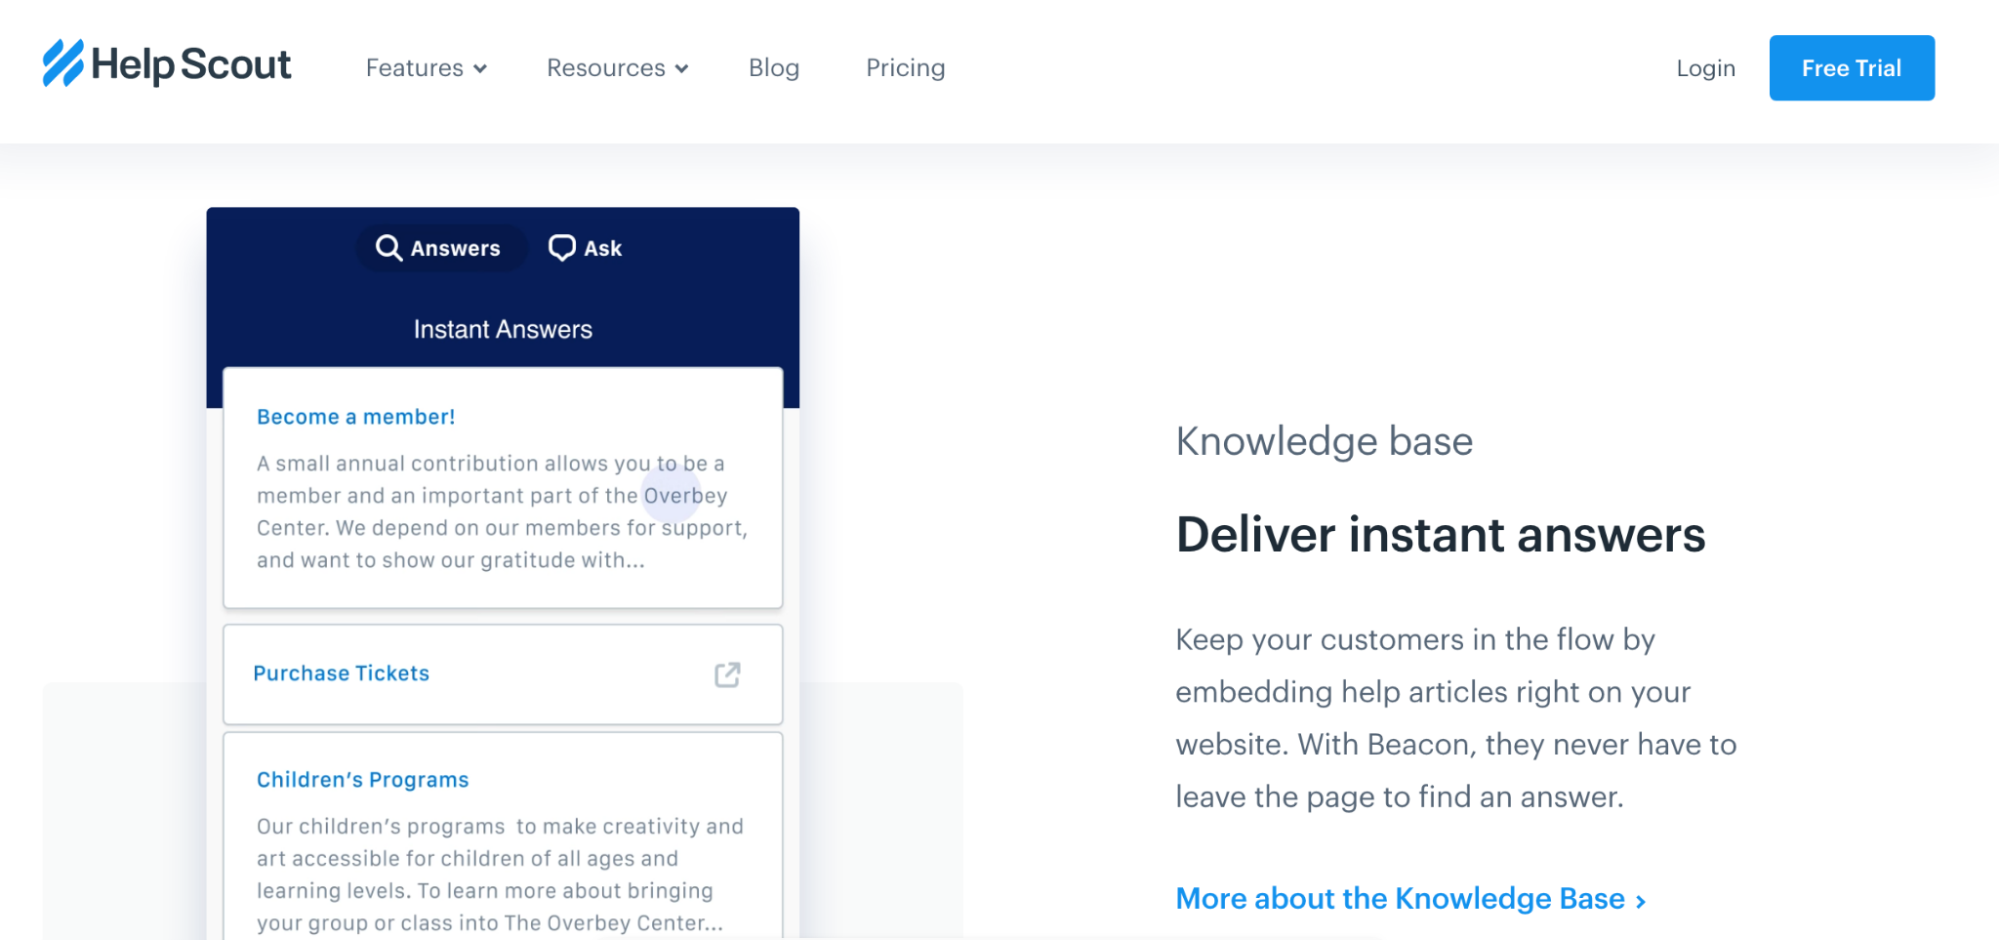 Helpscout's website